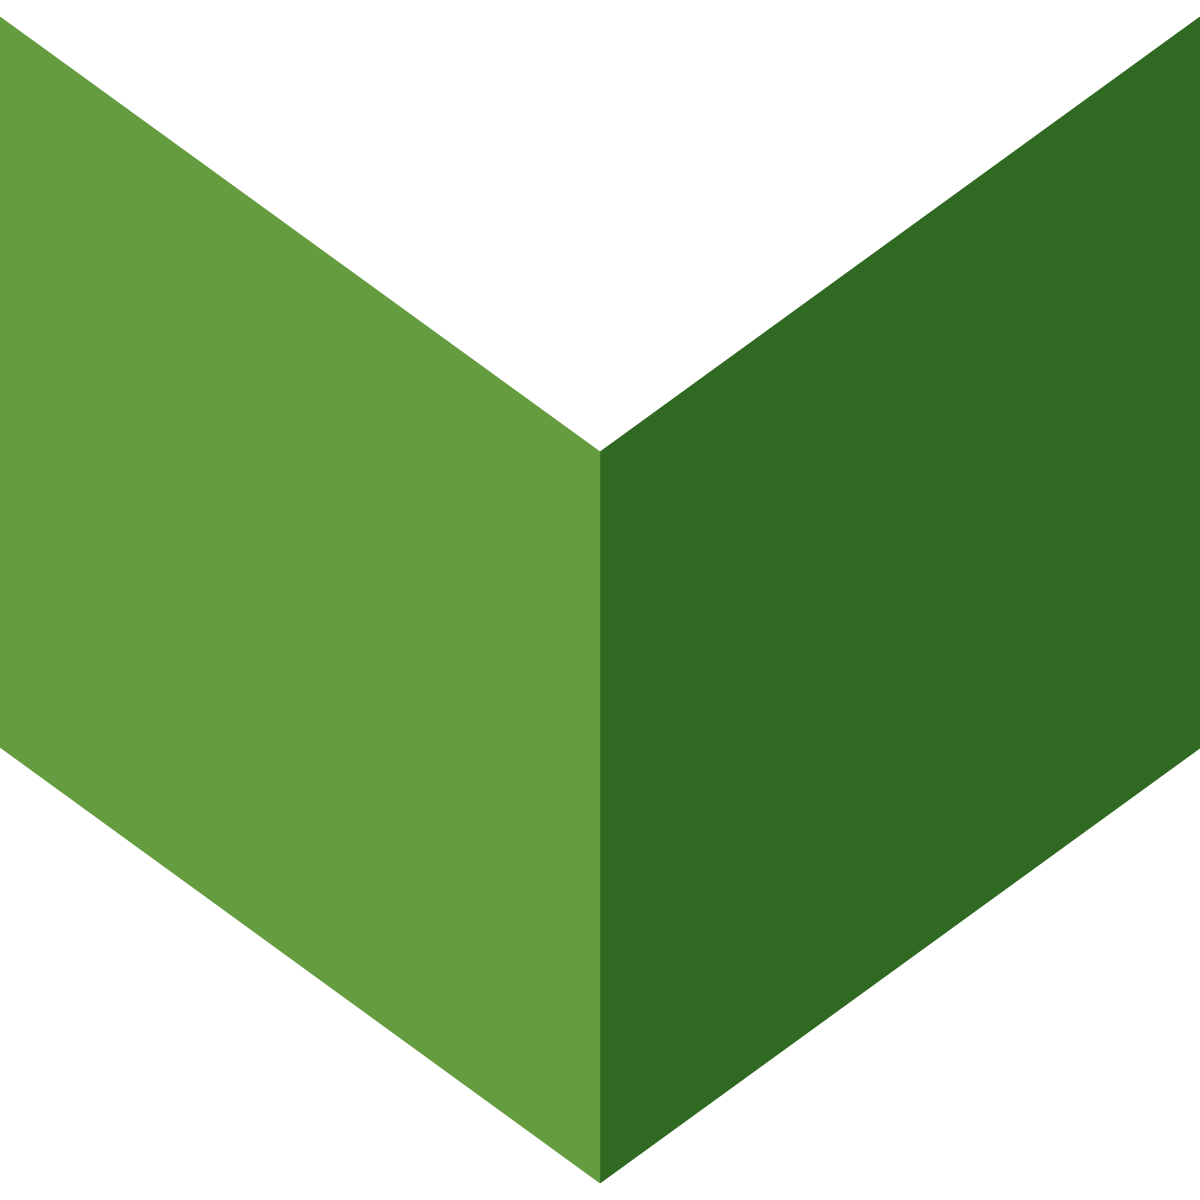 Large green chevron graphic arrow